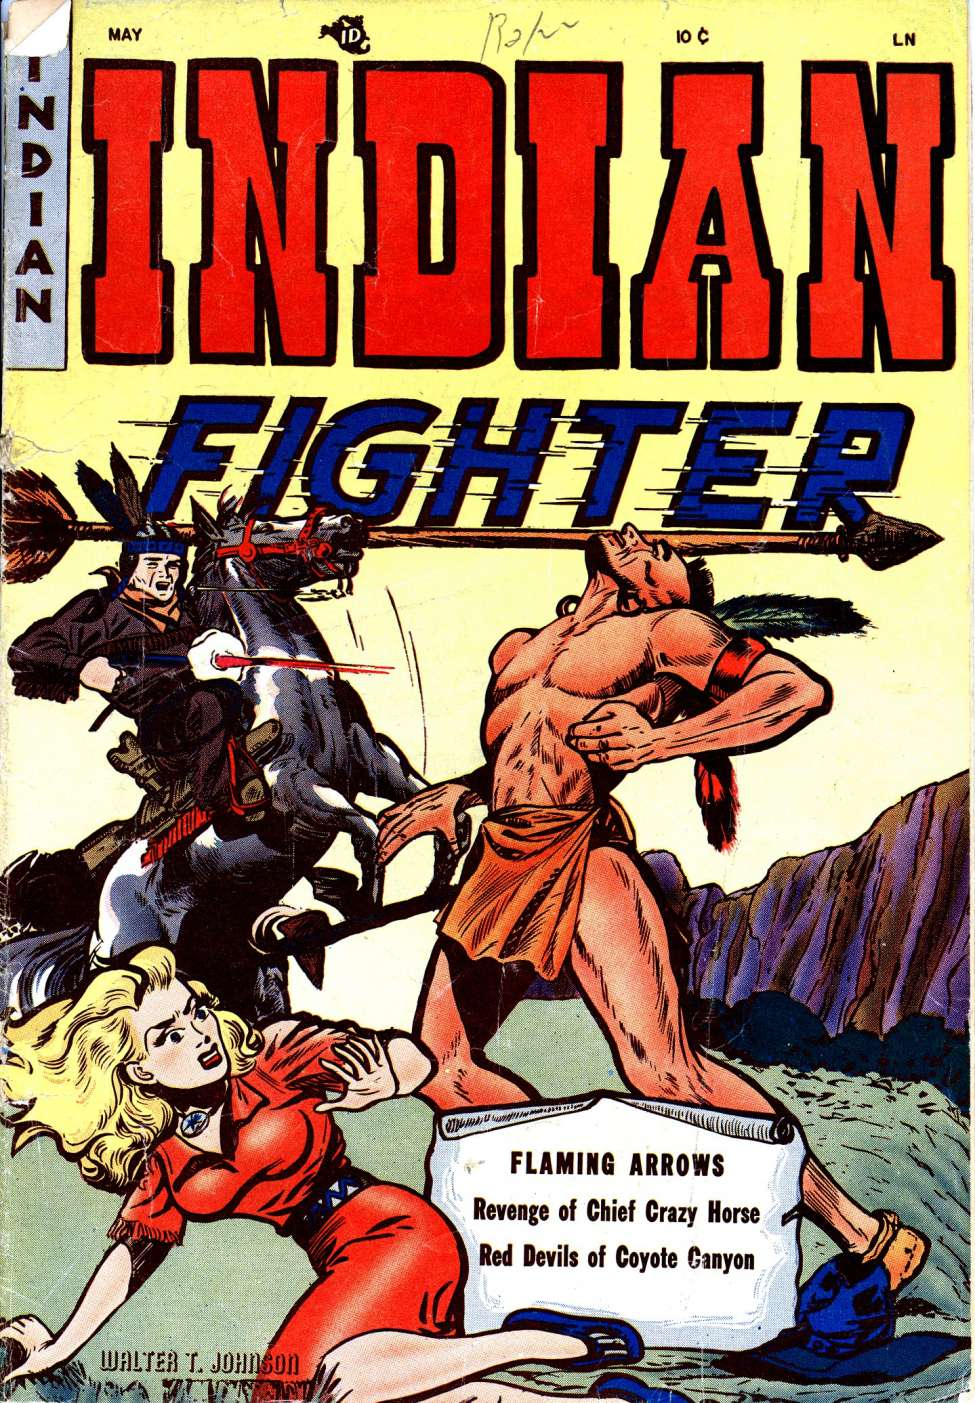 Indian Fighter #1, Youthful Magazines